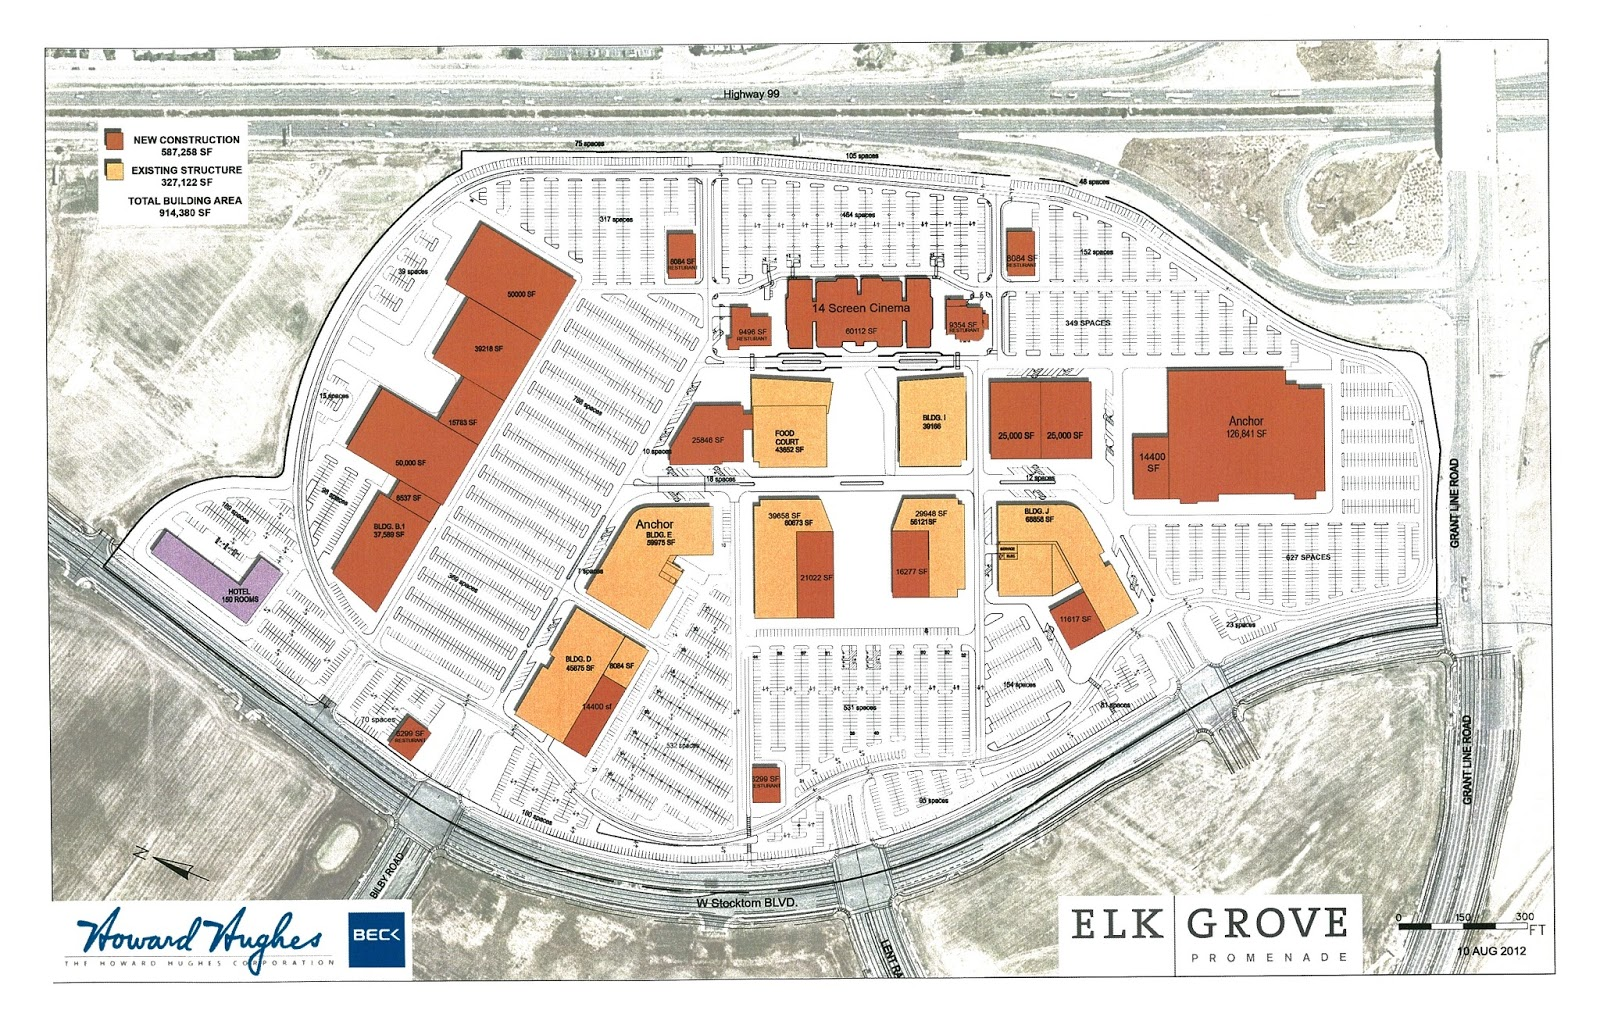 M & H Realty Makes Good on Threat, Files Suit Against Elk Grove on 'Outlet Collection'